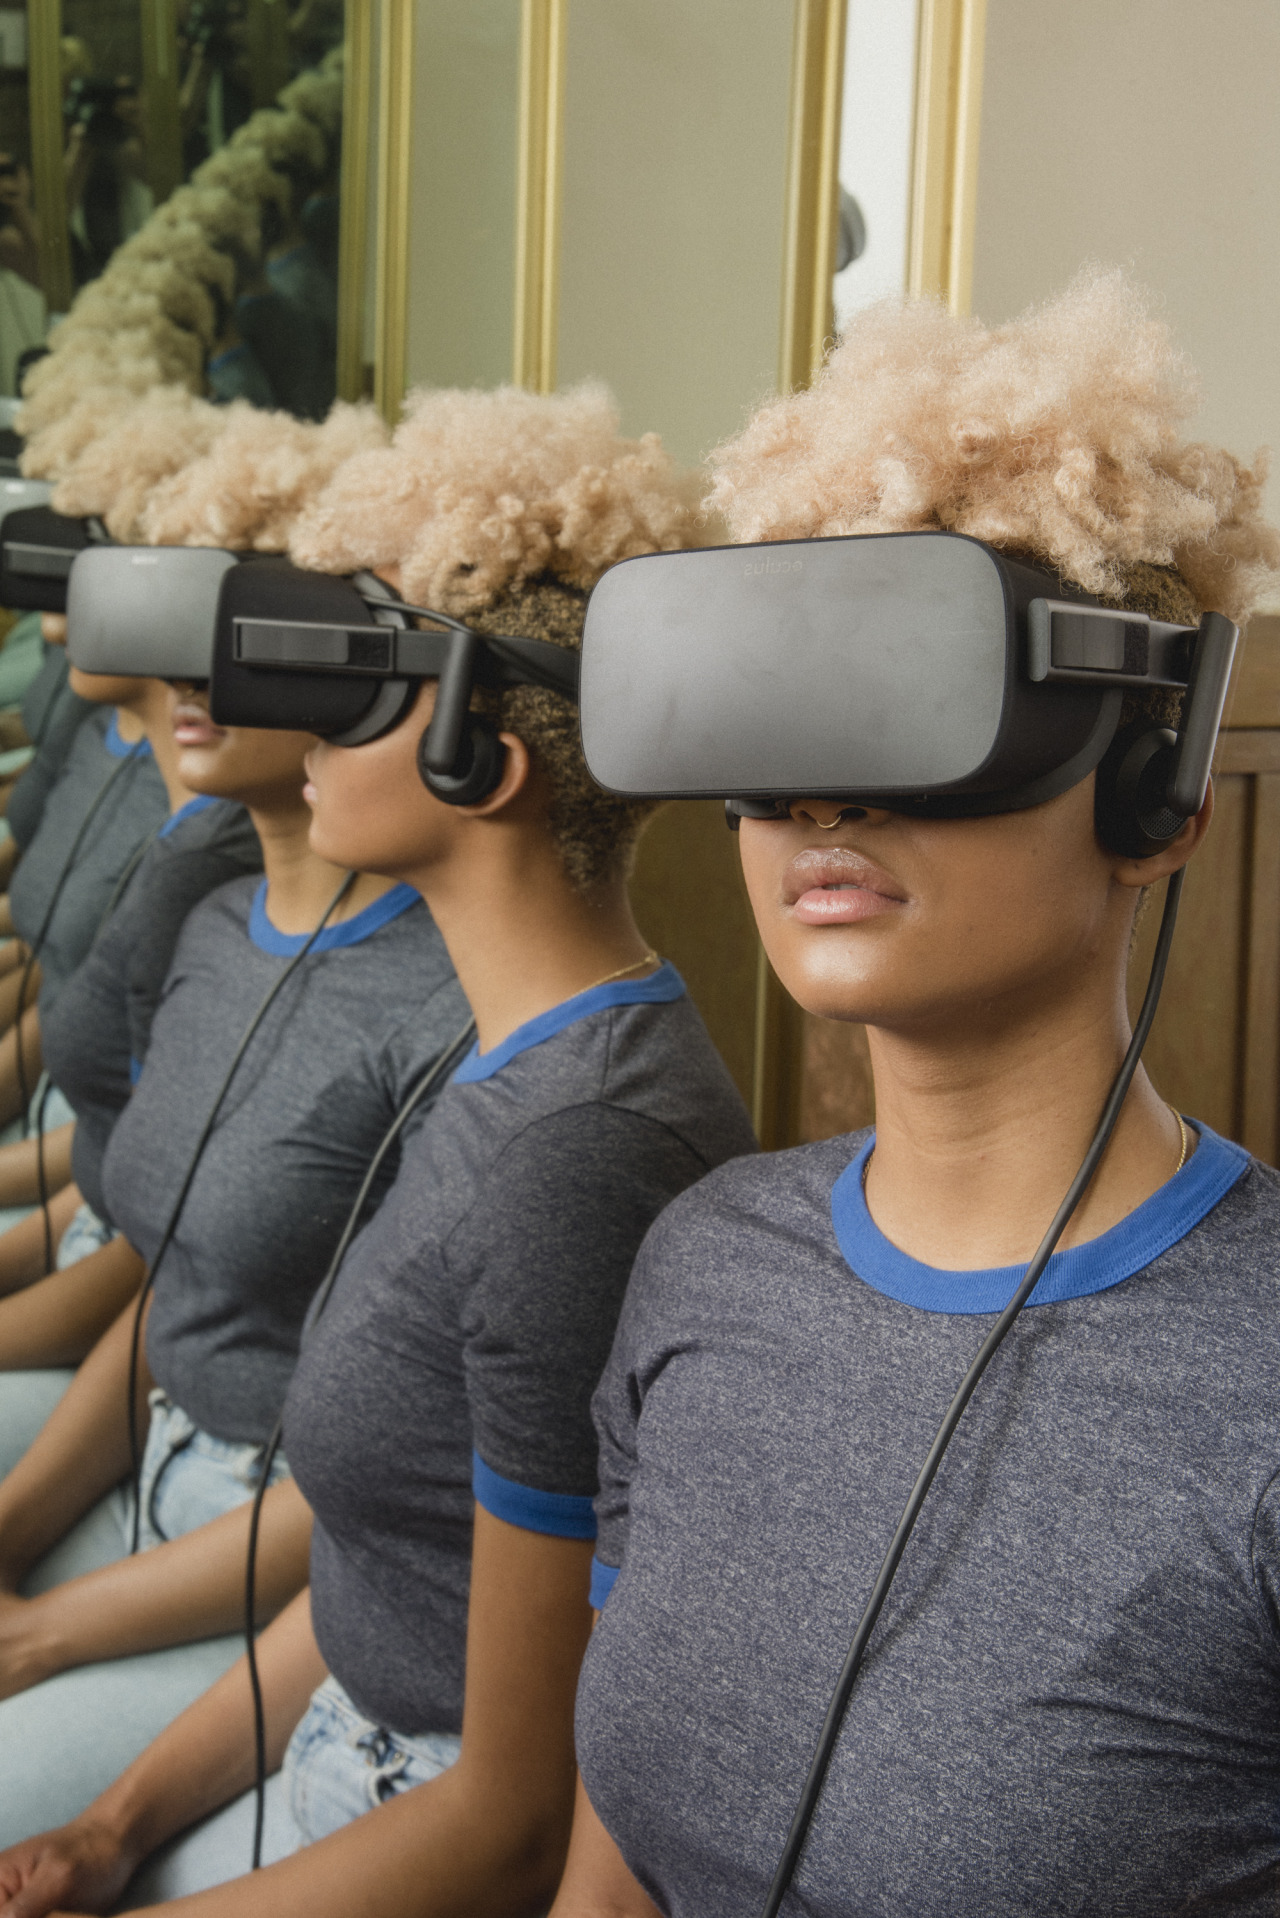 "<b><a href=""https://www.technologyreview.com/s/601492/oculus-rift-is-too-cool-to-ignore/#/set/id/601666/"">Oculus Rift Is Too Cool to Ignore</a></b> <br> Photograph by Damien Maloney"